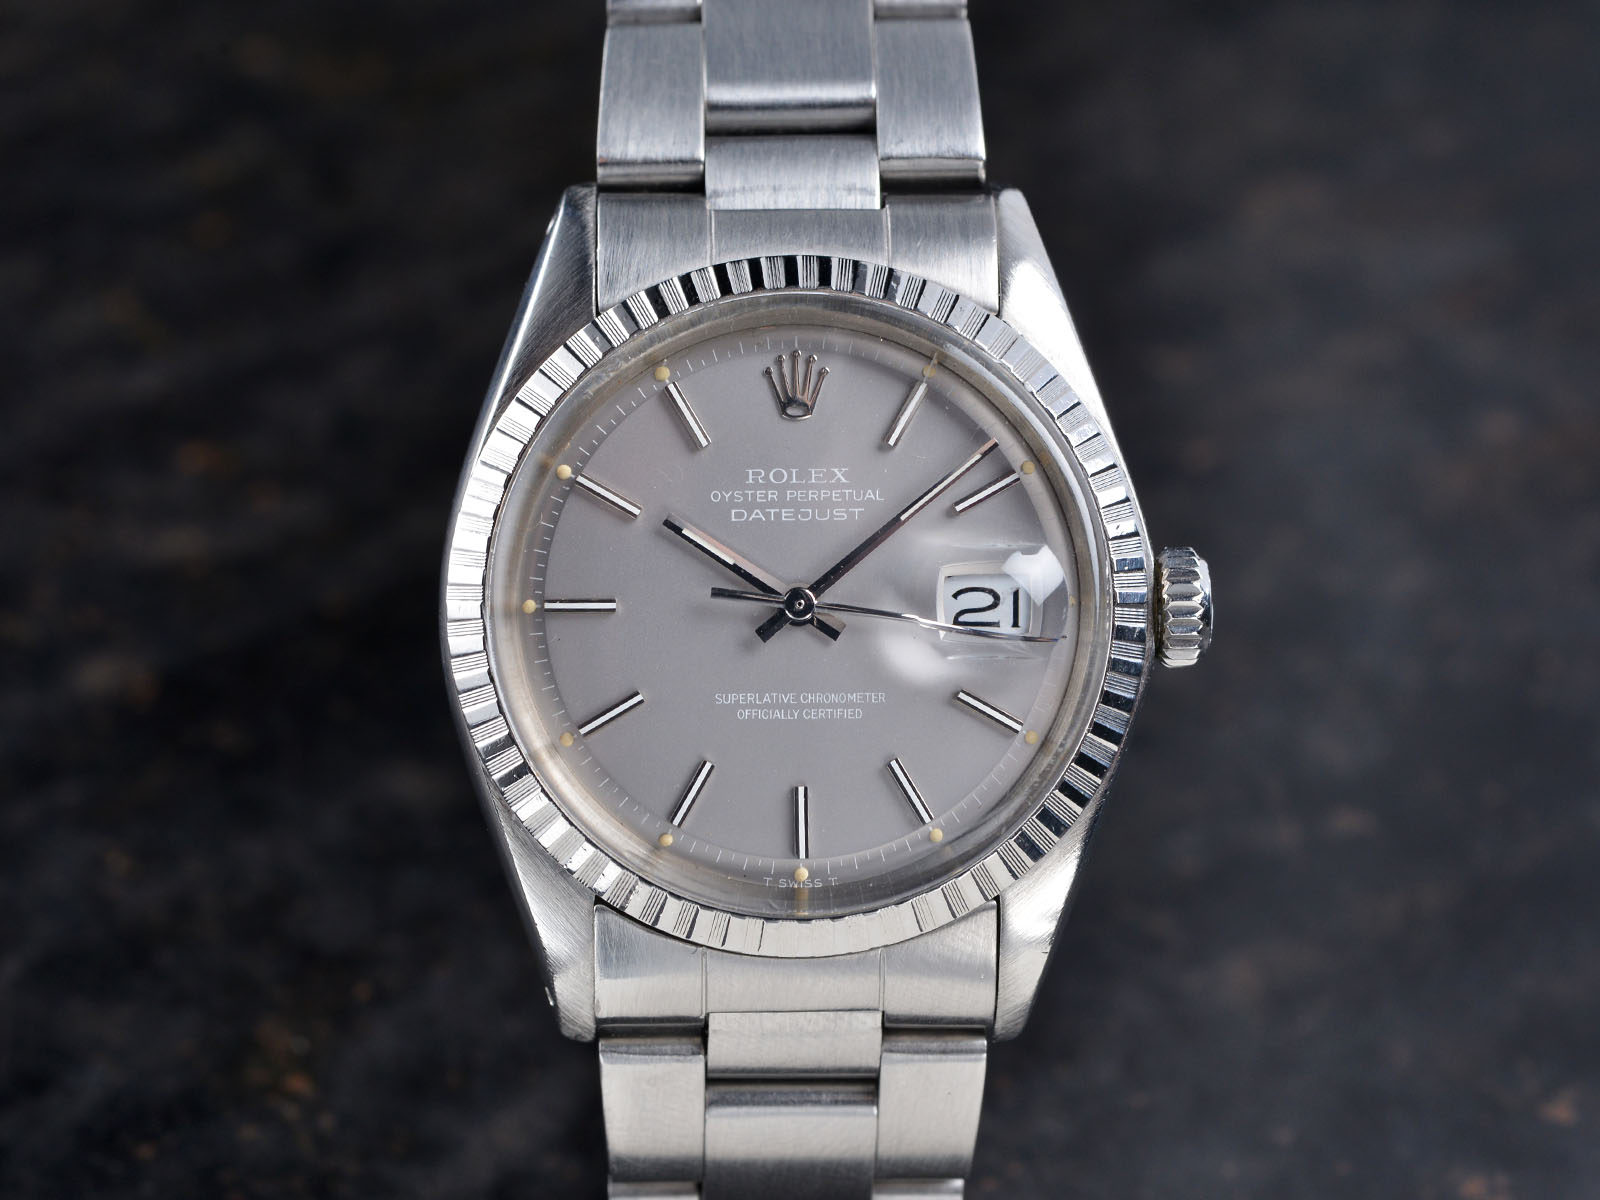 Fedex Box Prices >> ROLEX 1603 DATEJUST GHOST GREY DIAL - Bulang and Sons